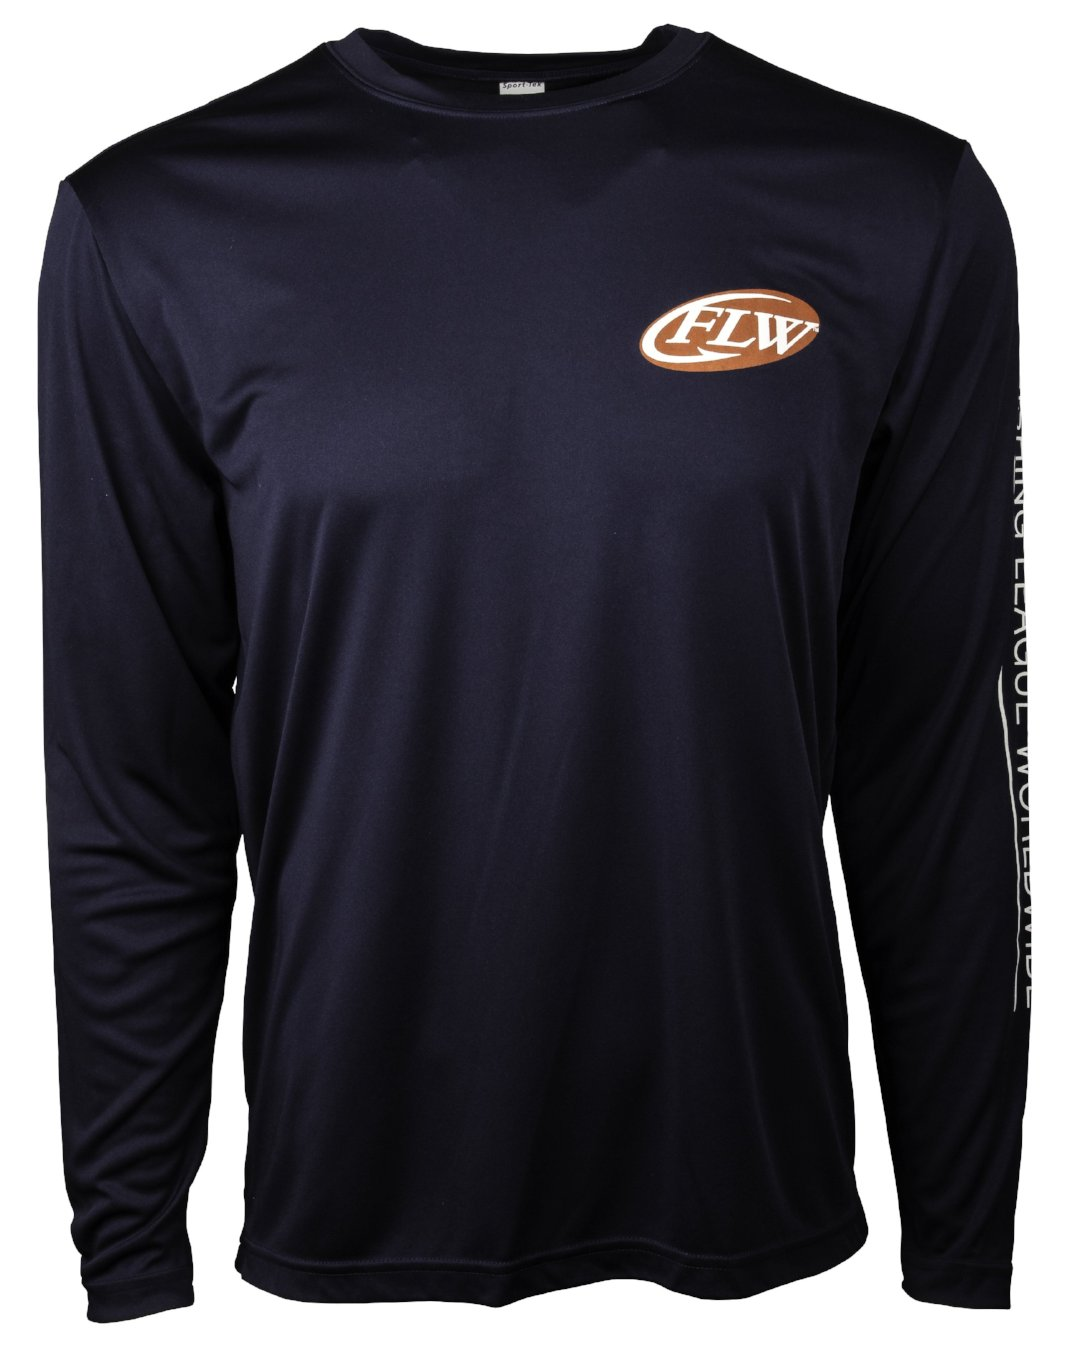 FLW Competitor Long Sleeve Shirt - Navy